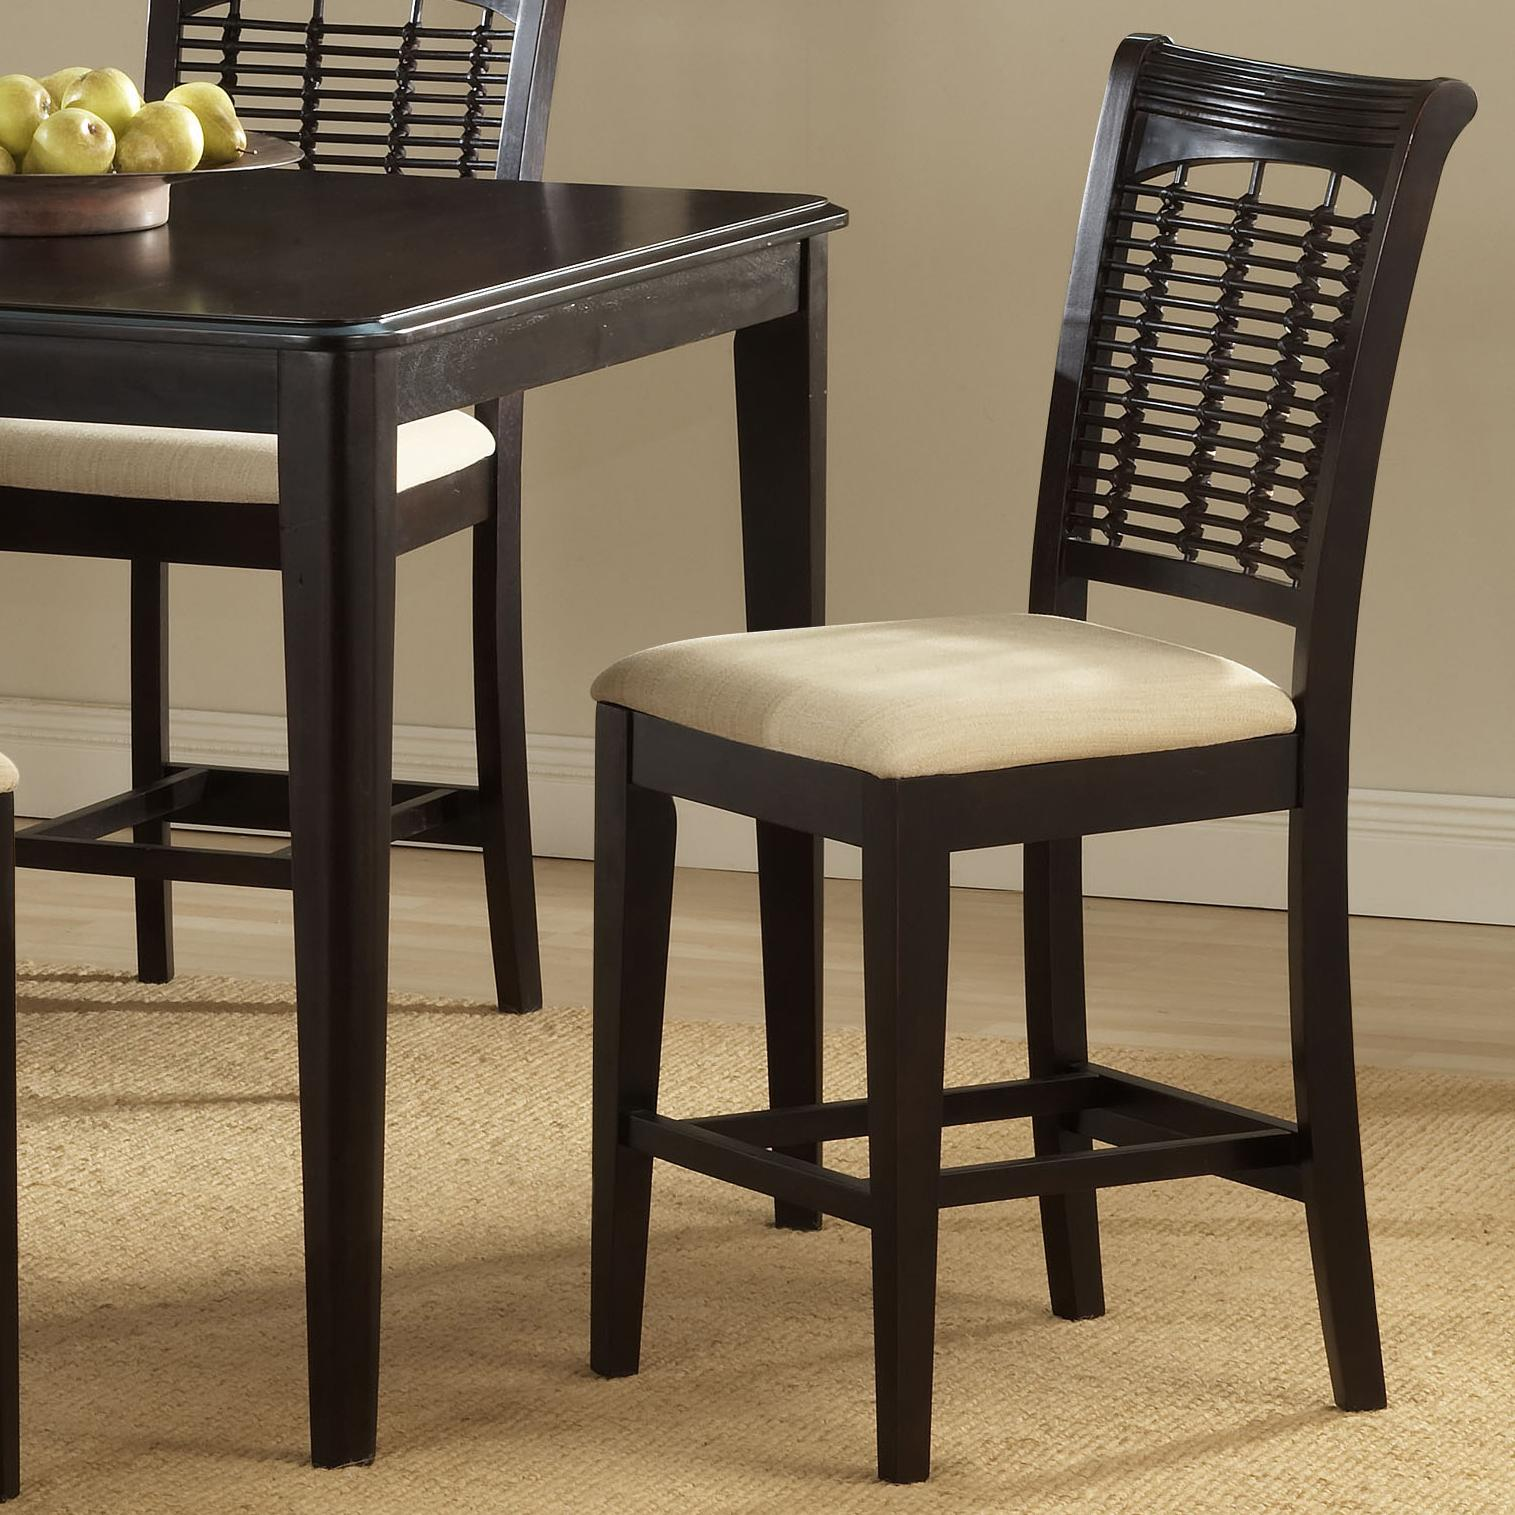 Hillsdale Bayberry and Glenmary Non-Swivel Counter Stool - Item Number: 4783-822